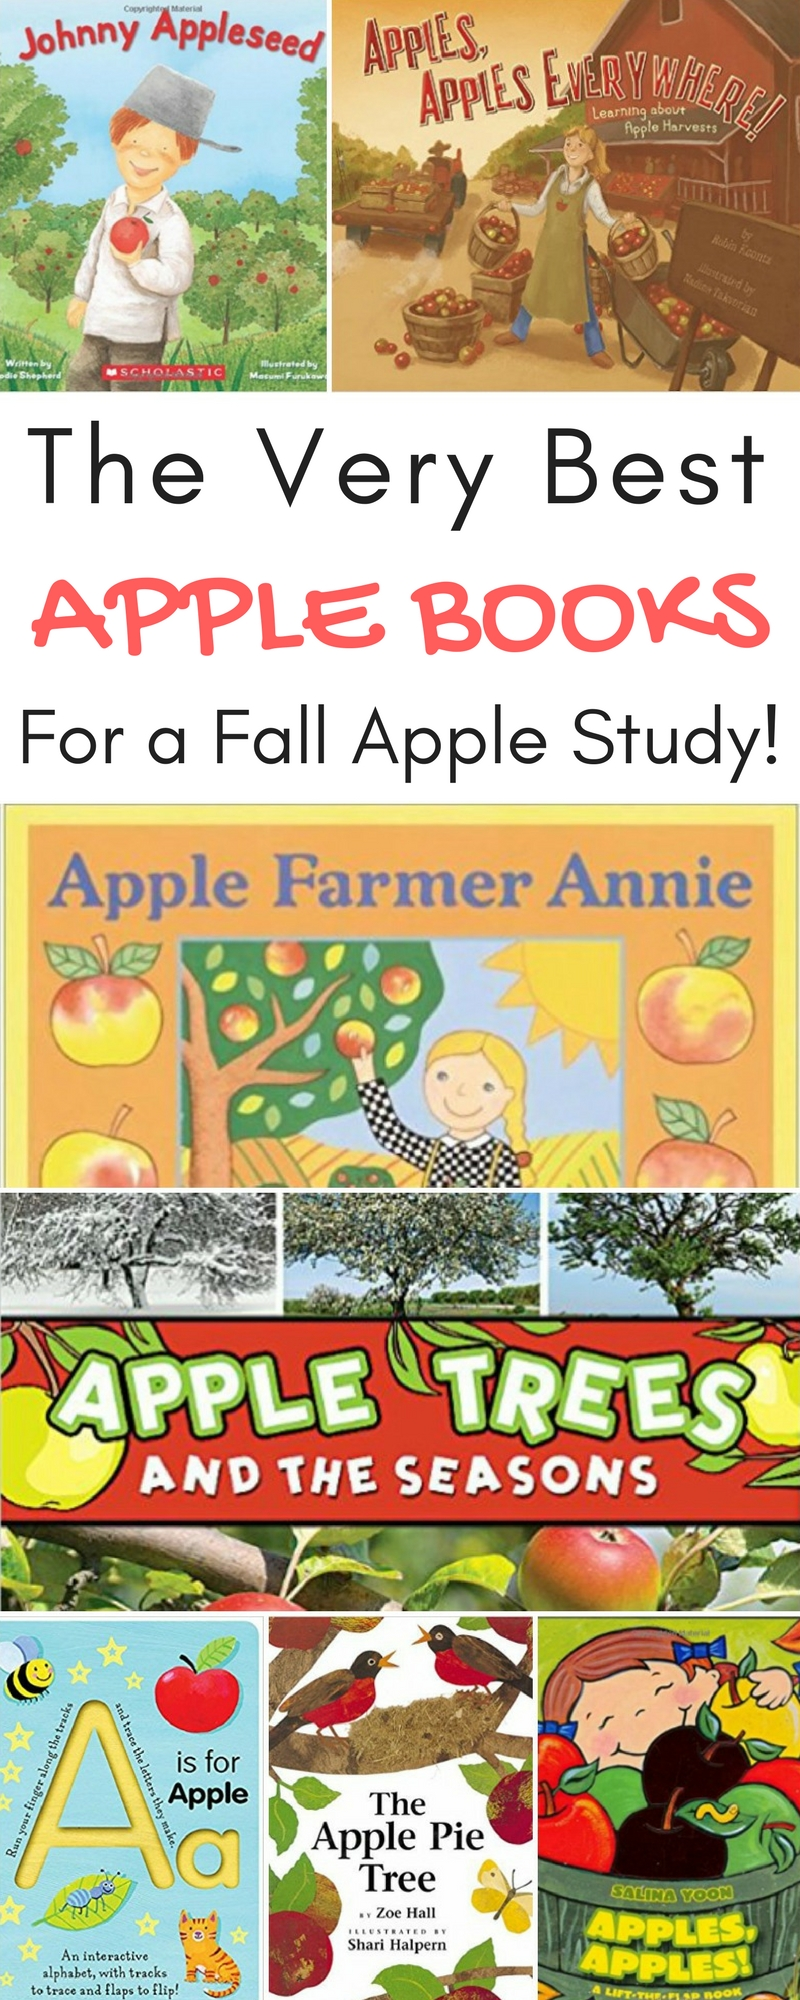 The Very Best Apple Books for a Fall Apple Study!